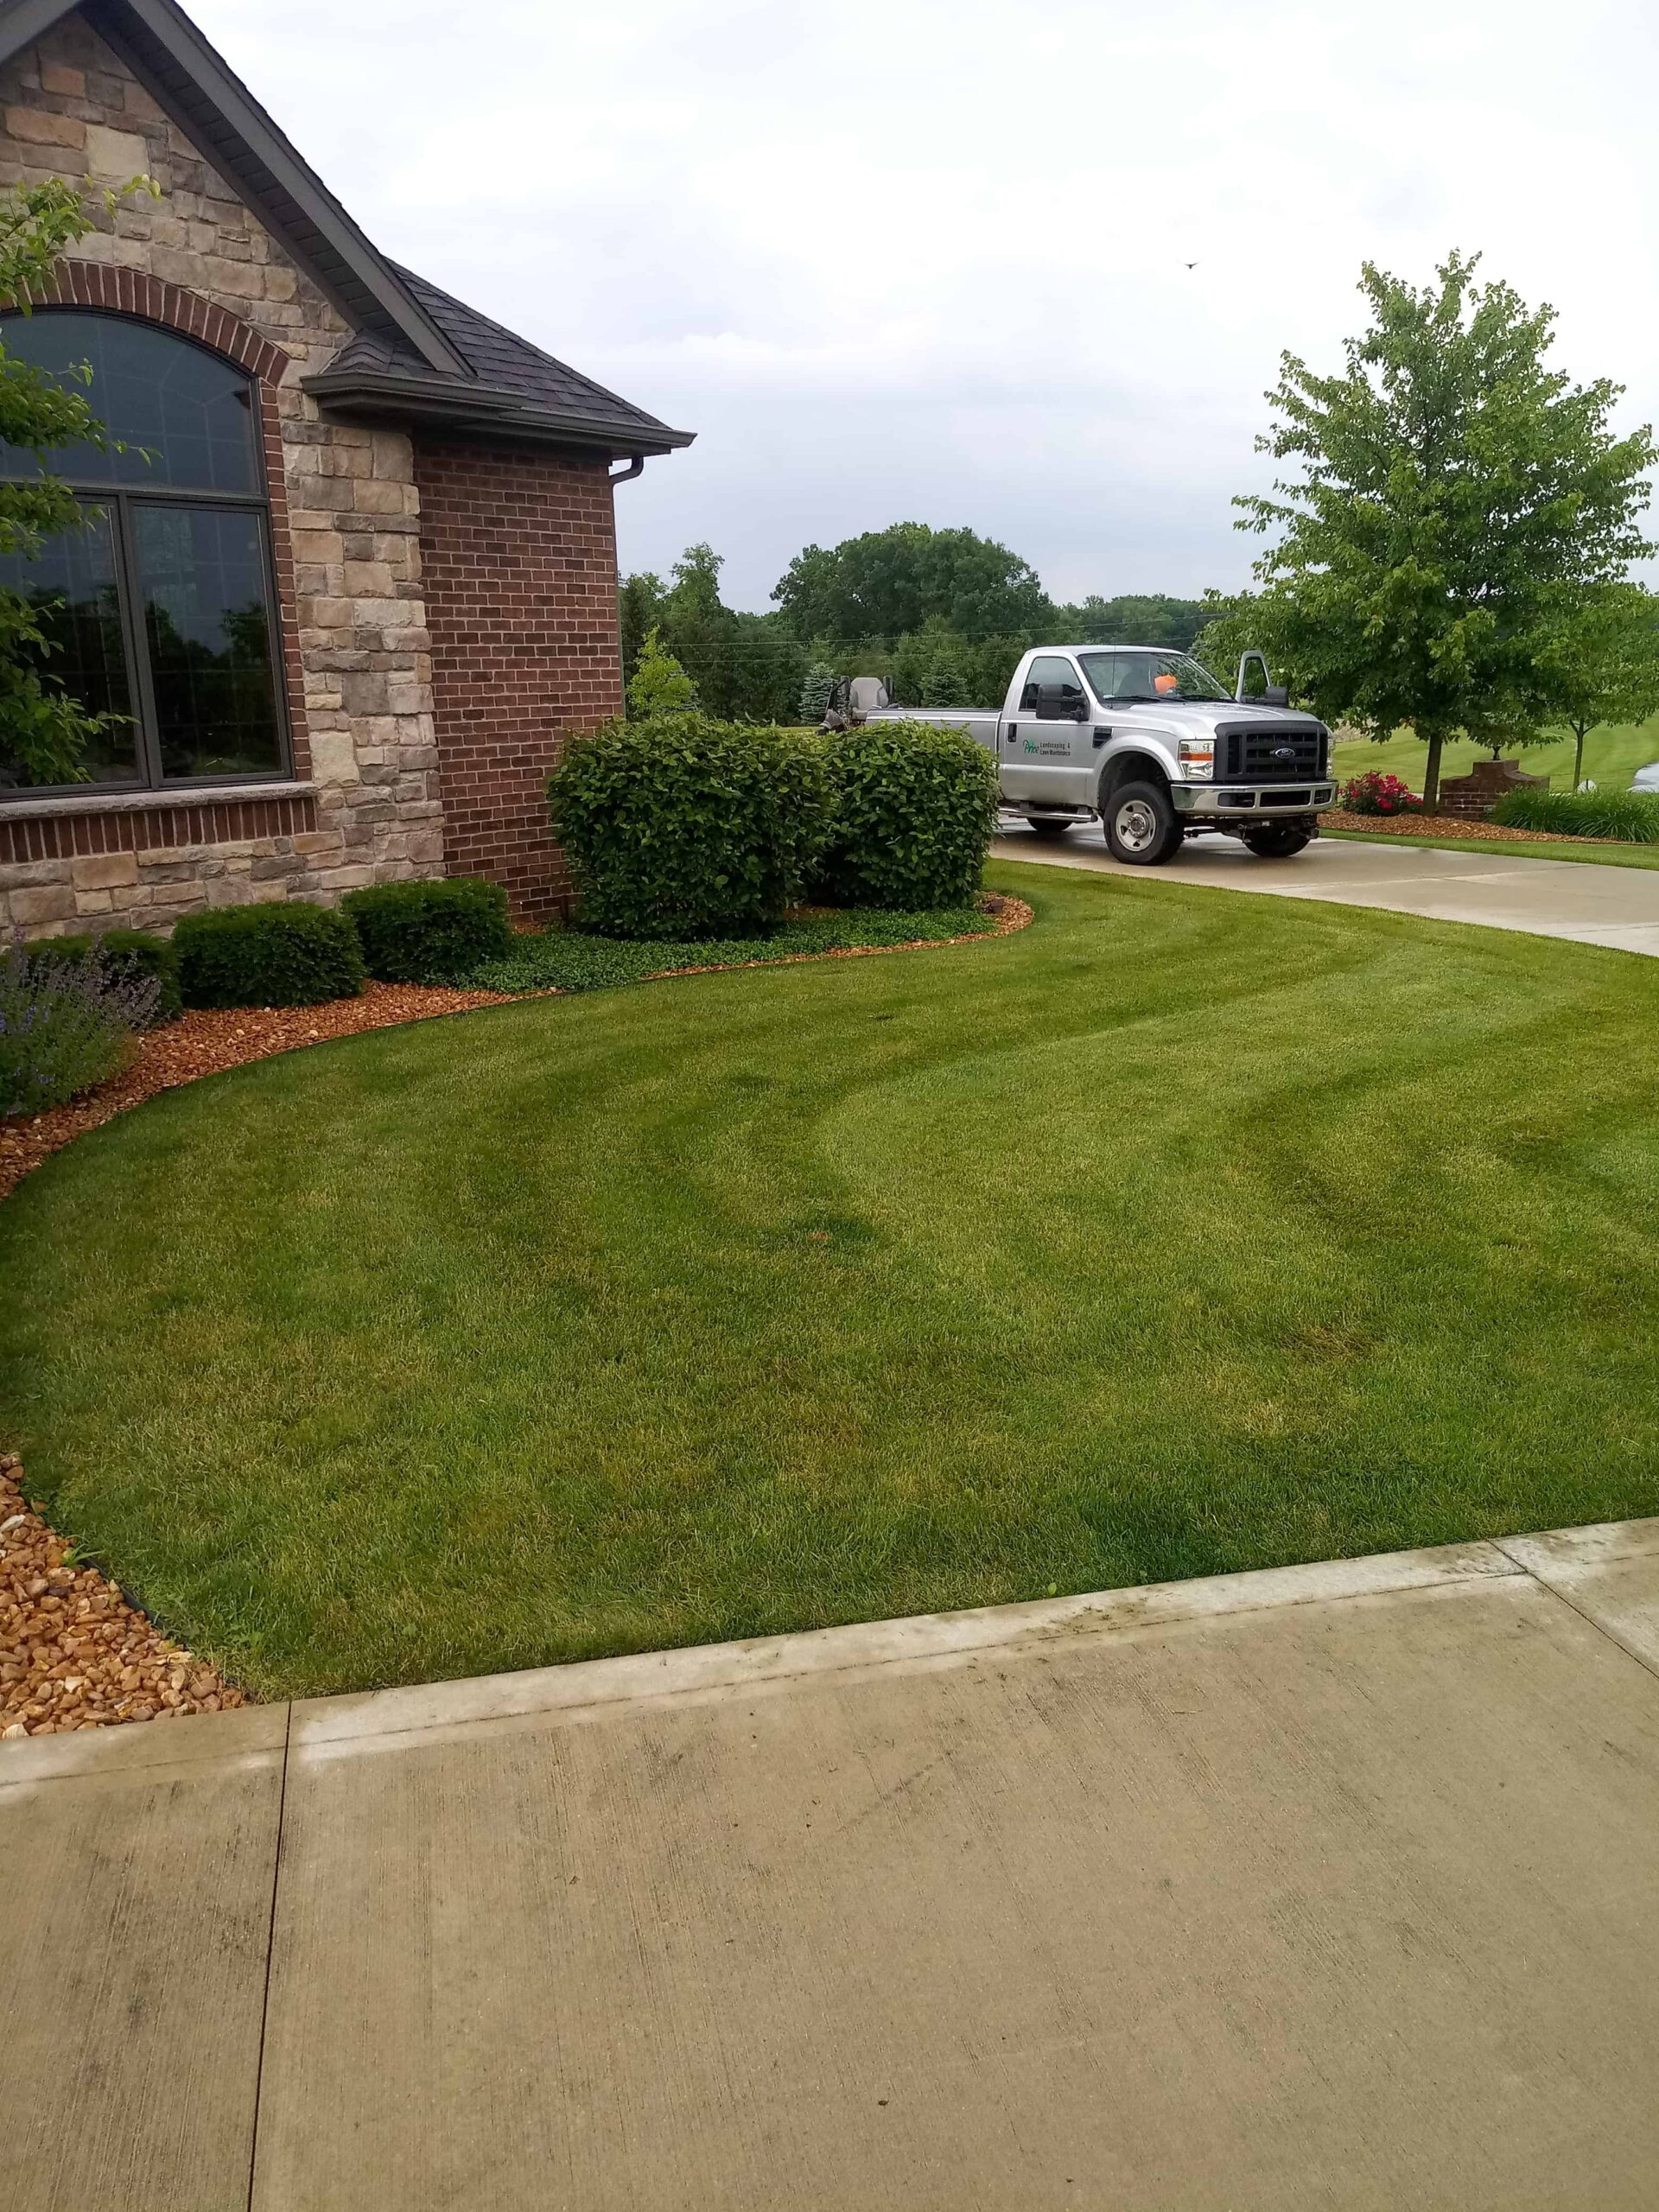 Landscaping and Mowing Services, Greater Fort Wayne Area